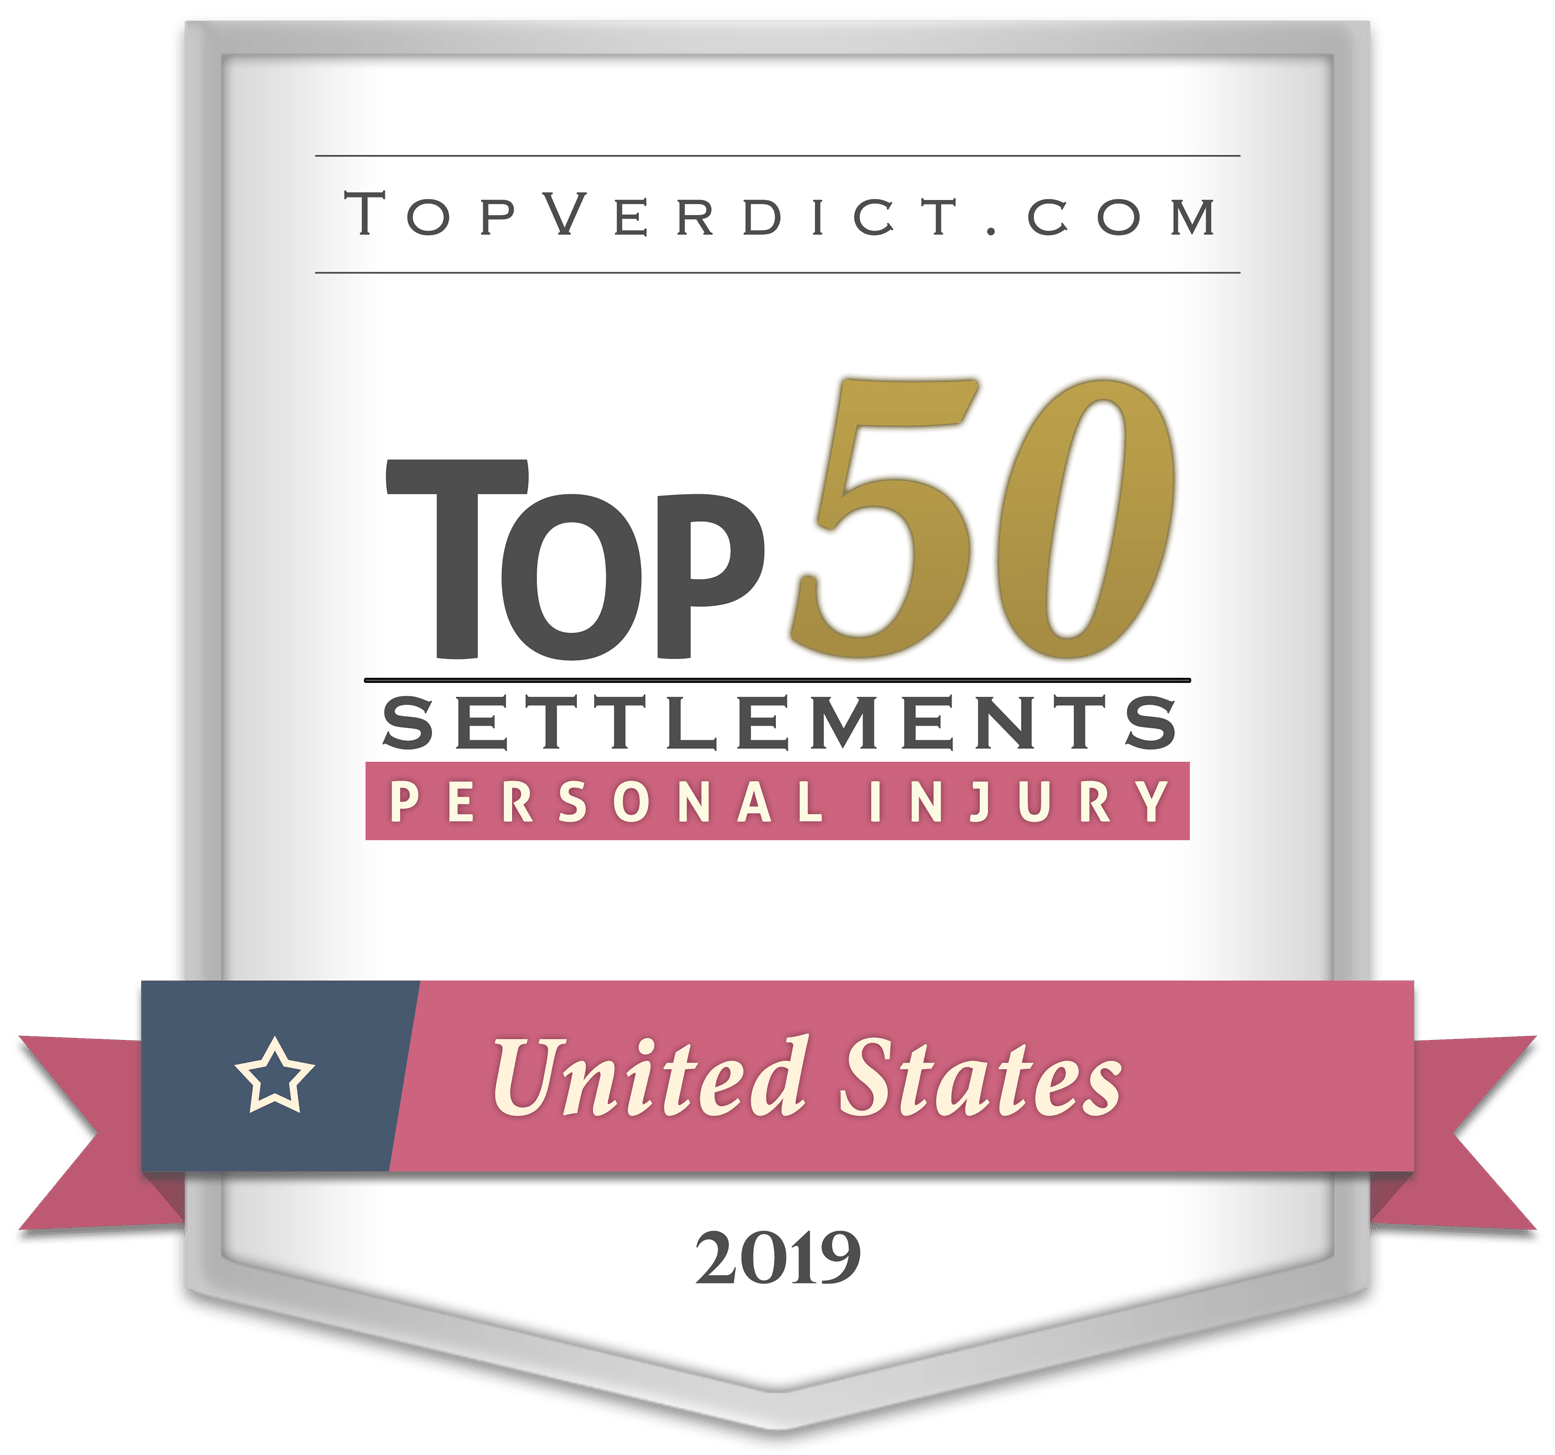 Topverdict.com, top 50 settlements for personal injury 2019